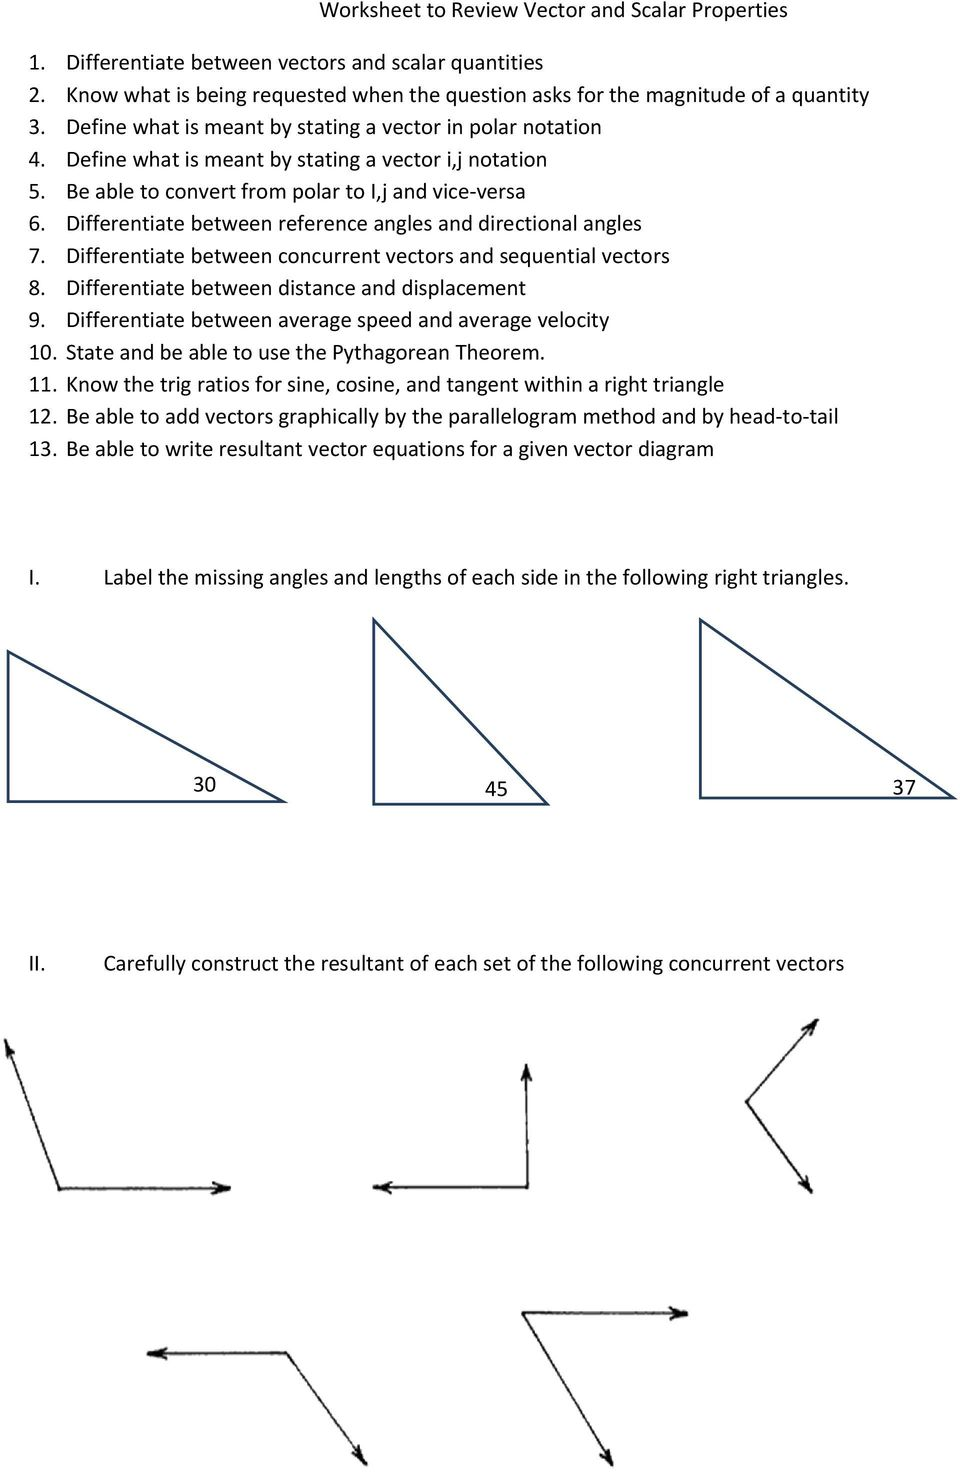 Worksheet To Review Vector And Scalar Properties Pdf Free Download Graphical addition of vectors worksheet